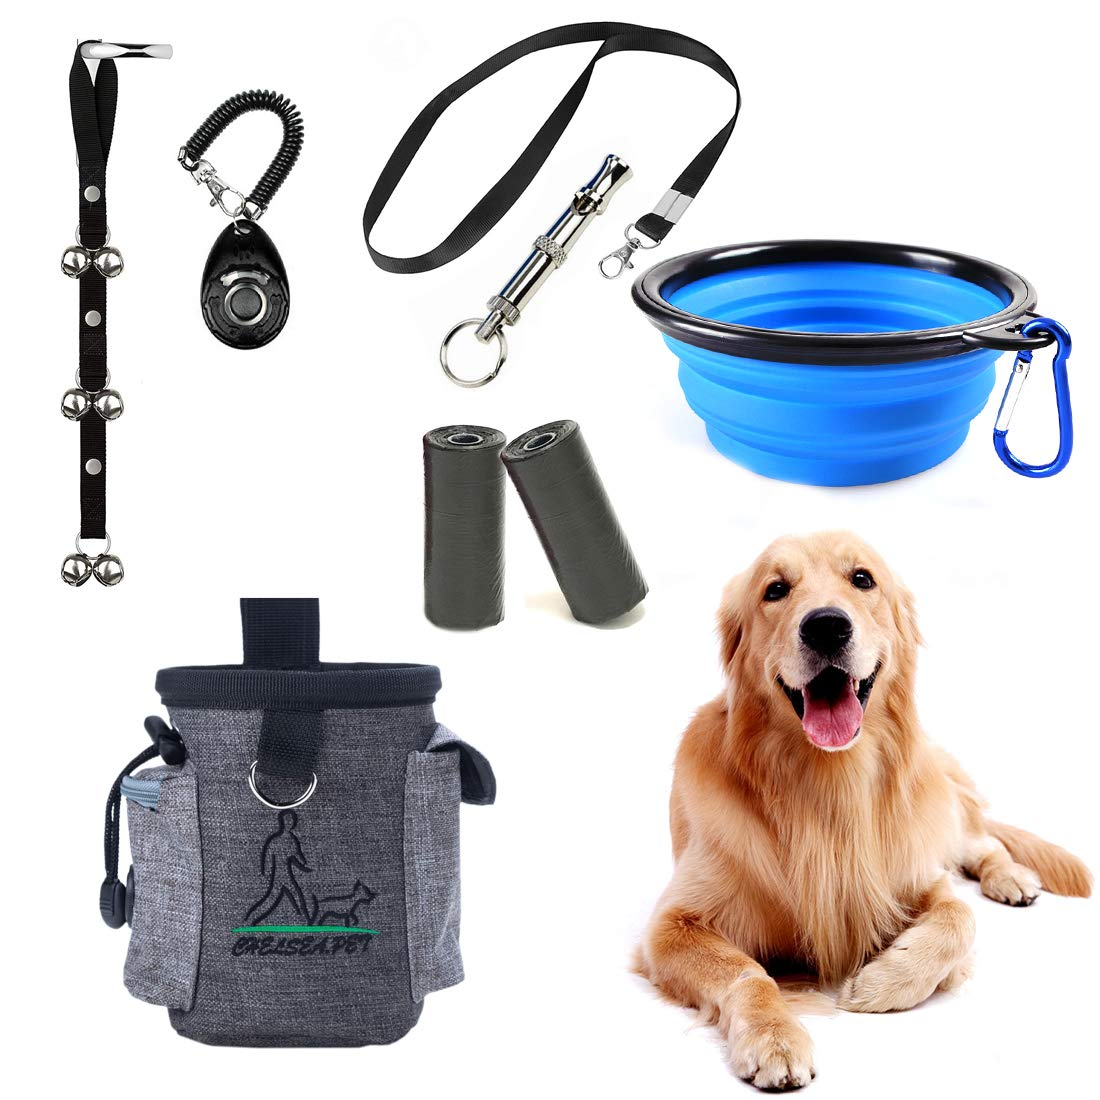 SSRIVER Puppy Training Kit 6 Pcs Adjustable Puppy Doorbells for Dogs Training Bag Whistle to Control Stop Barking Dog Bowl and Poop Bag Pet Trainer Dog Training Set Clicker by SSRIVER